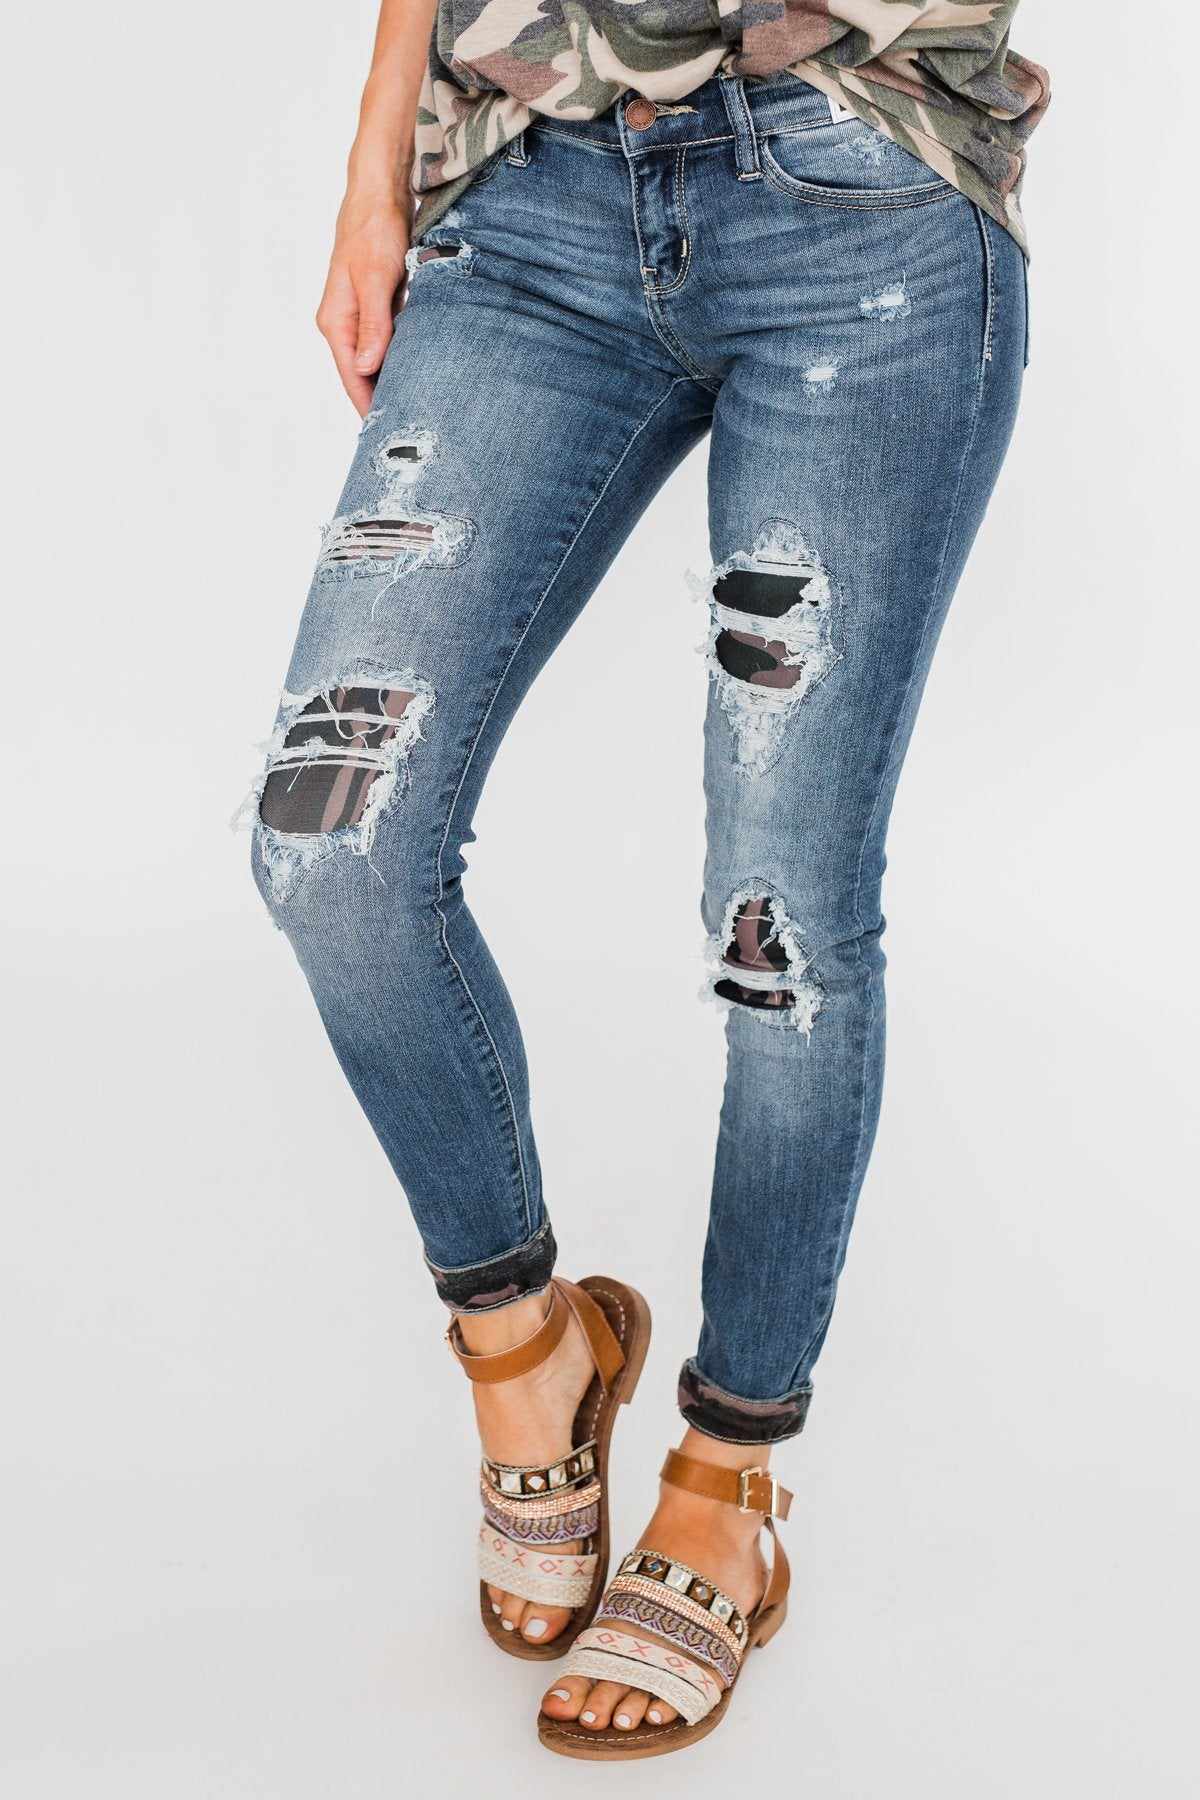 Judy Blue Jeans- Camo Patch